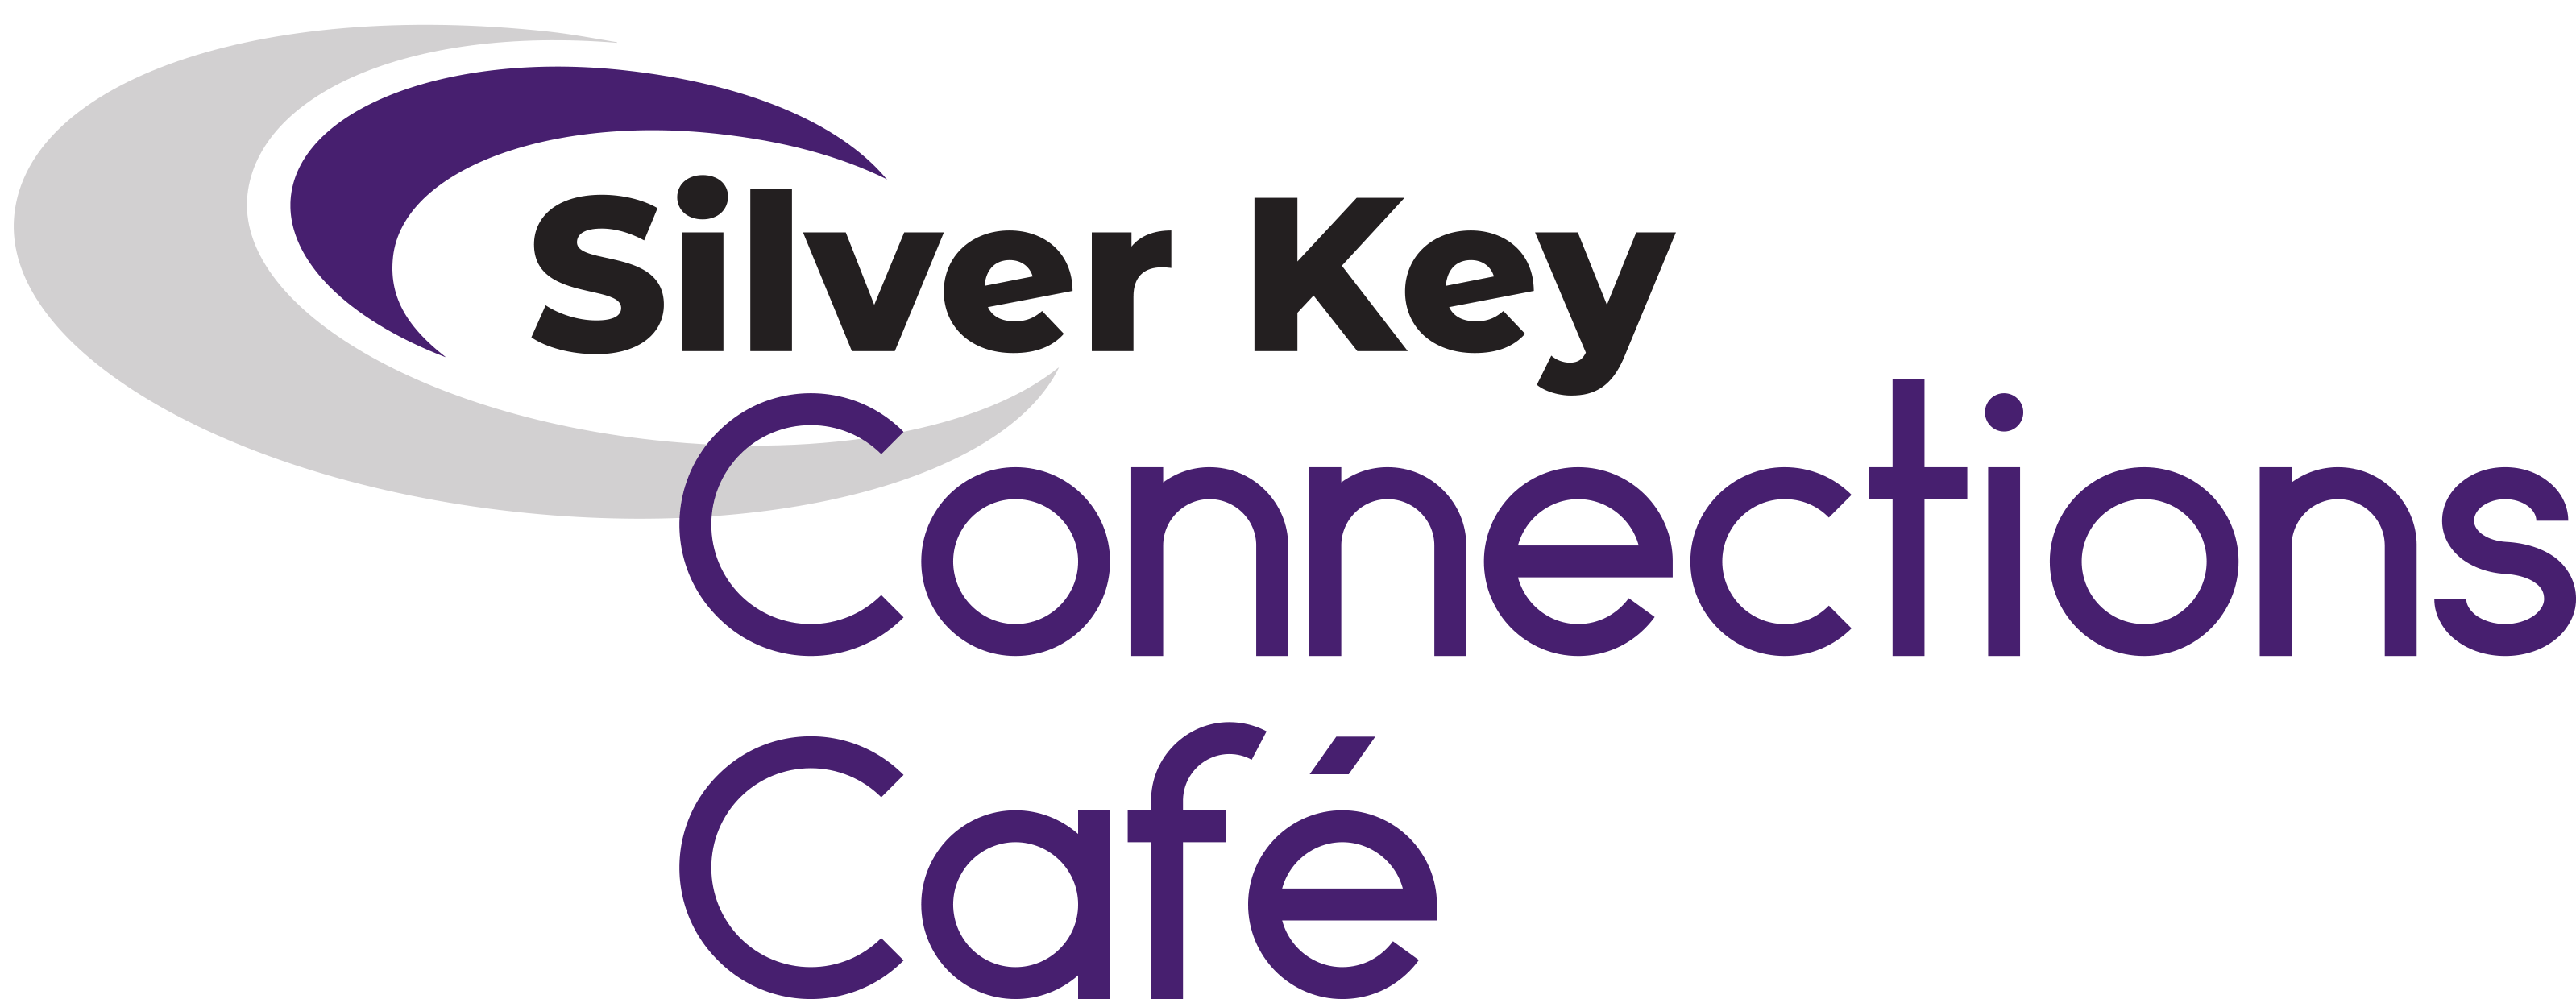 Silver Key Connections Cafe